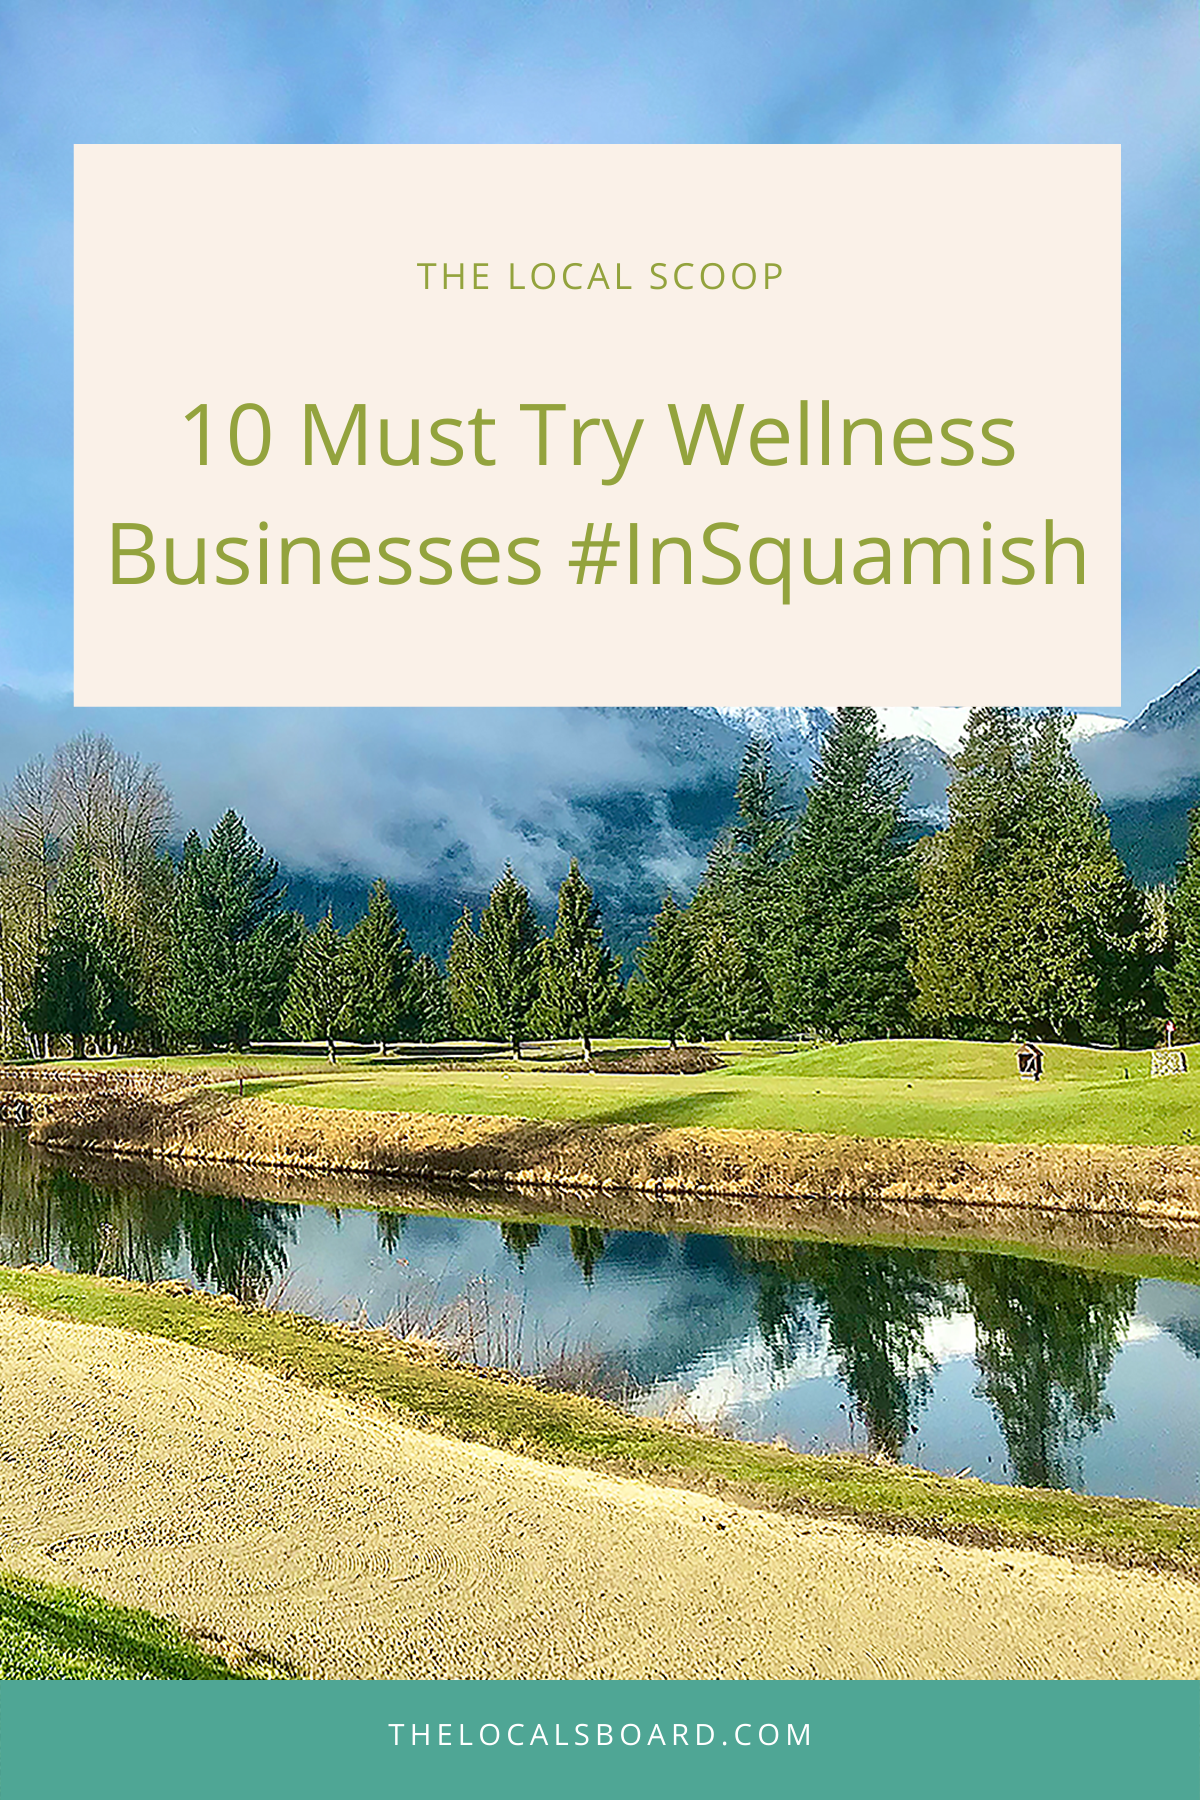 10 Must Try Wellness Businesses #inSquamish